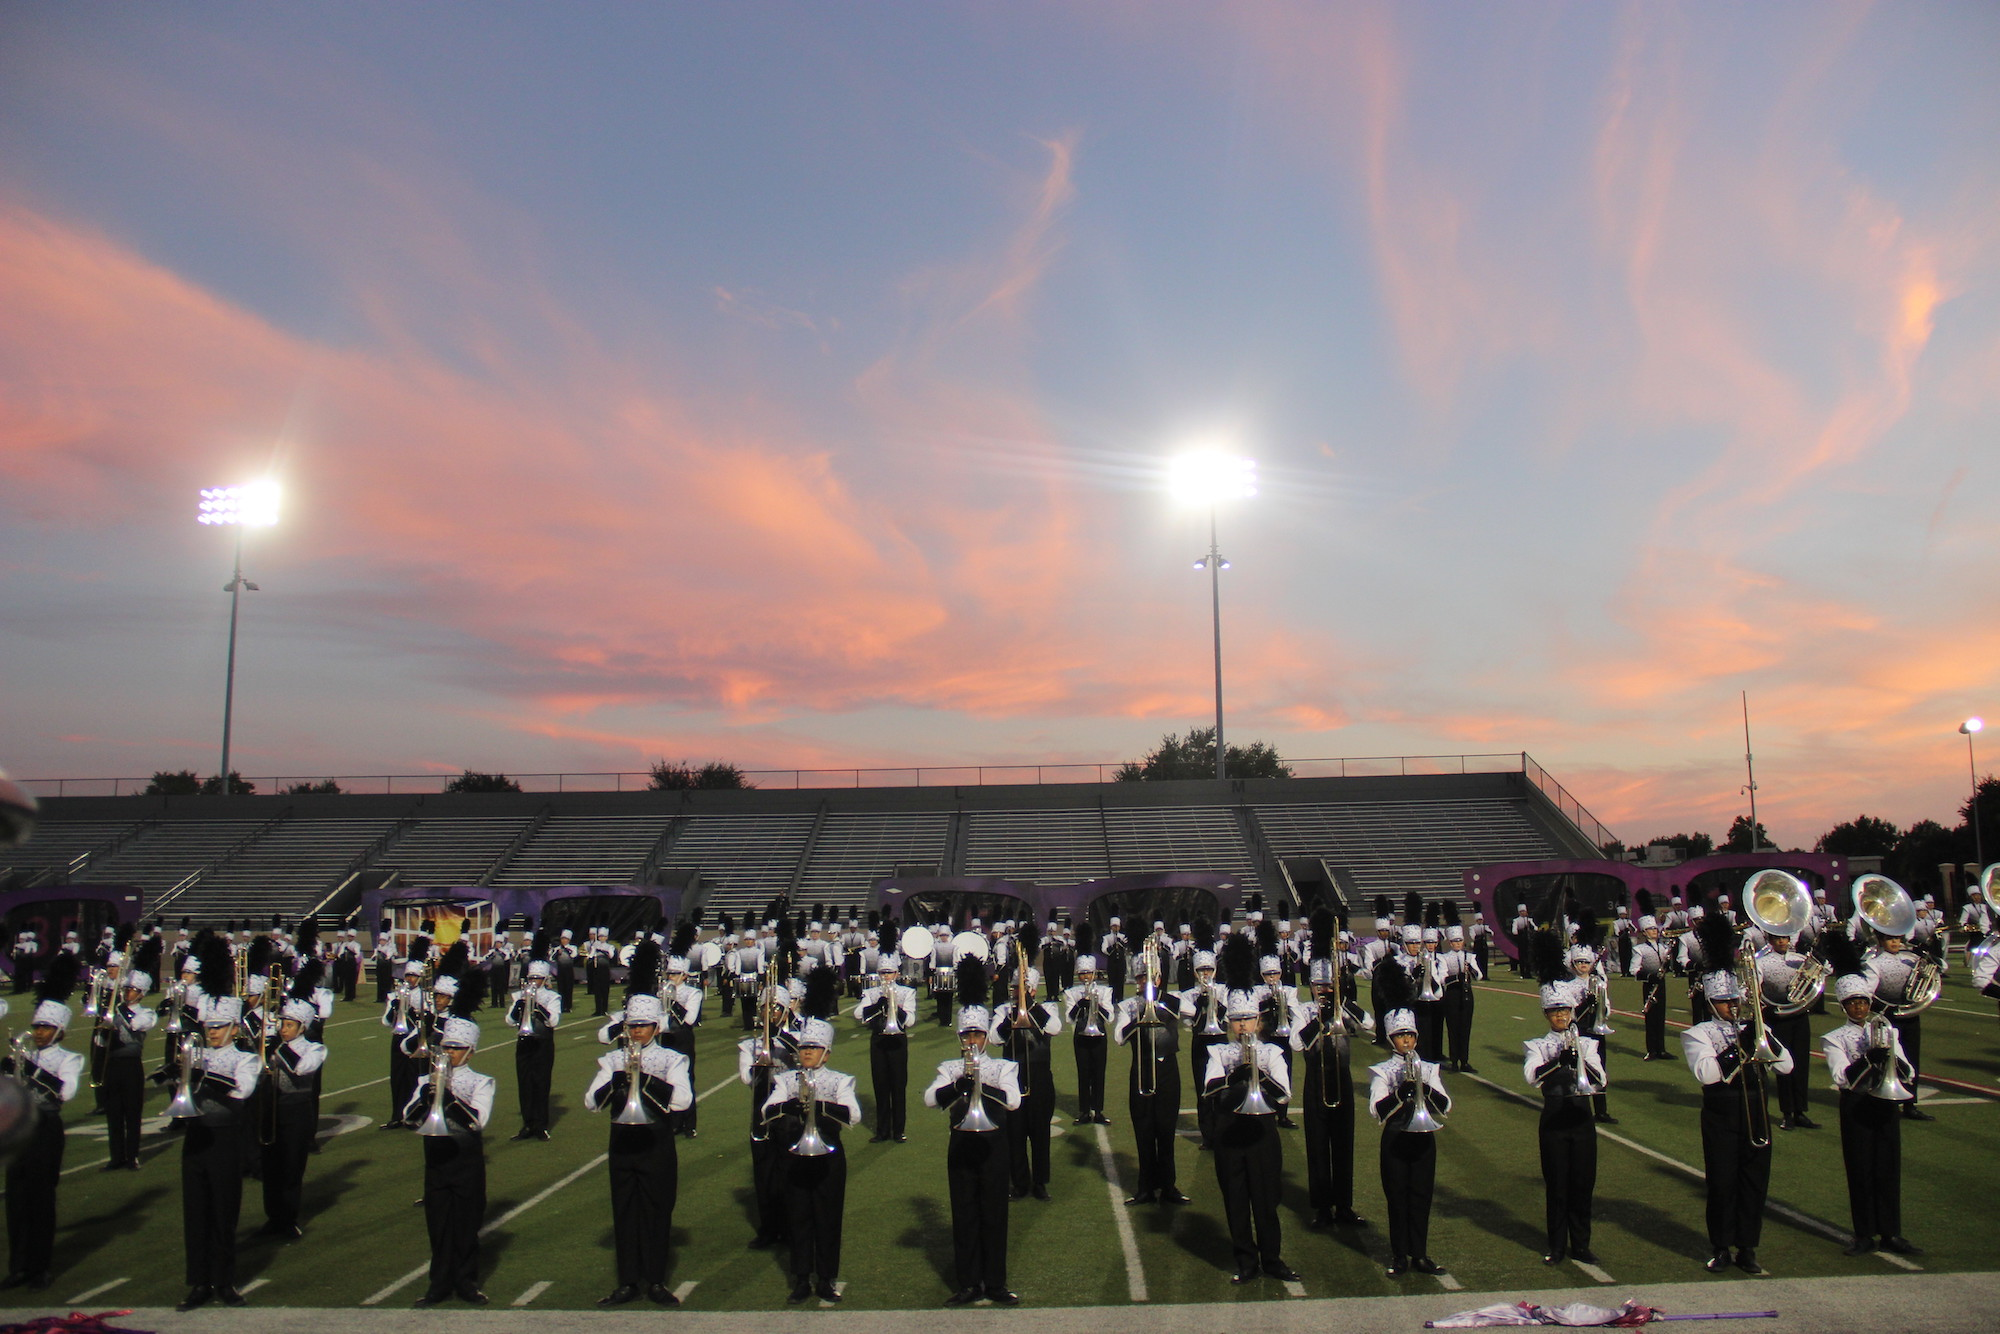 Booster clubs are an integral part for extracurricular programs ranging from athletics, fine arts and academics at Coppell High School. The band has one of the largest booster clubs on campus, financially supporting over 300 student members.